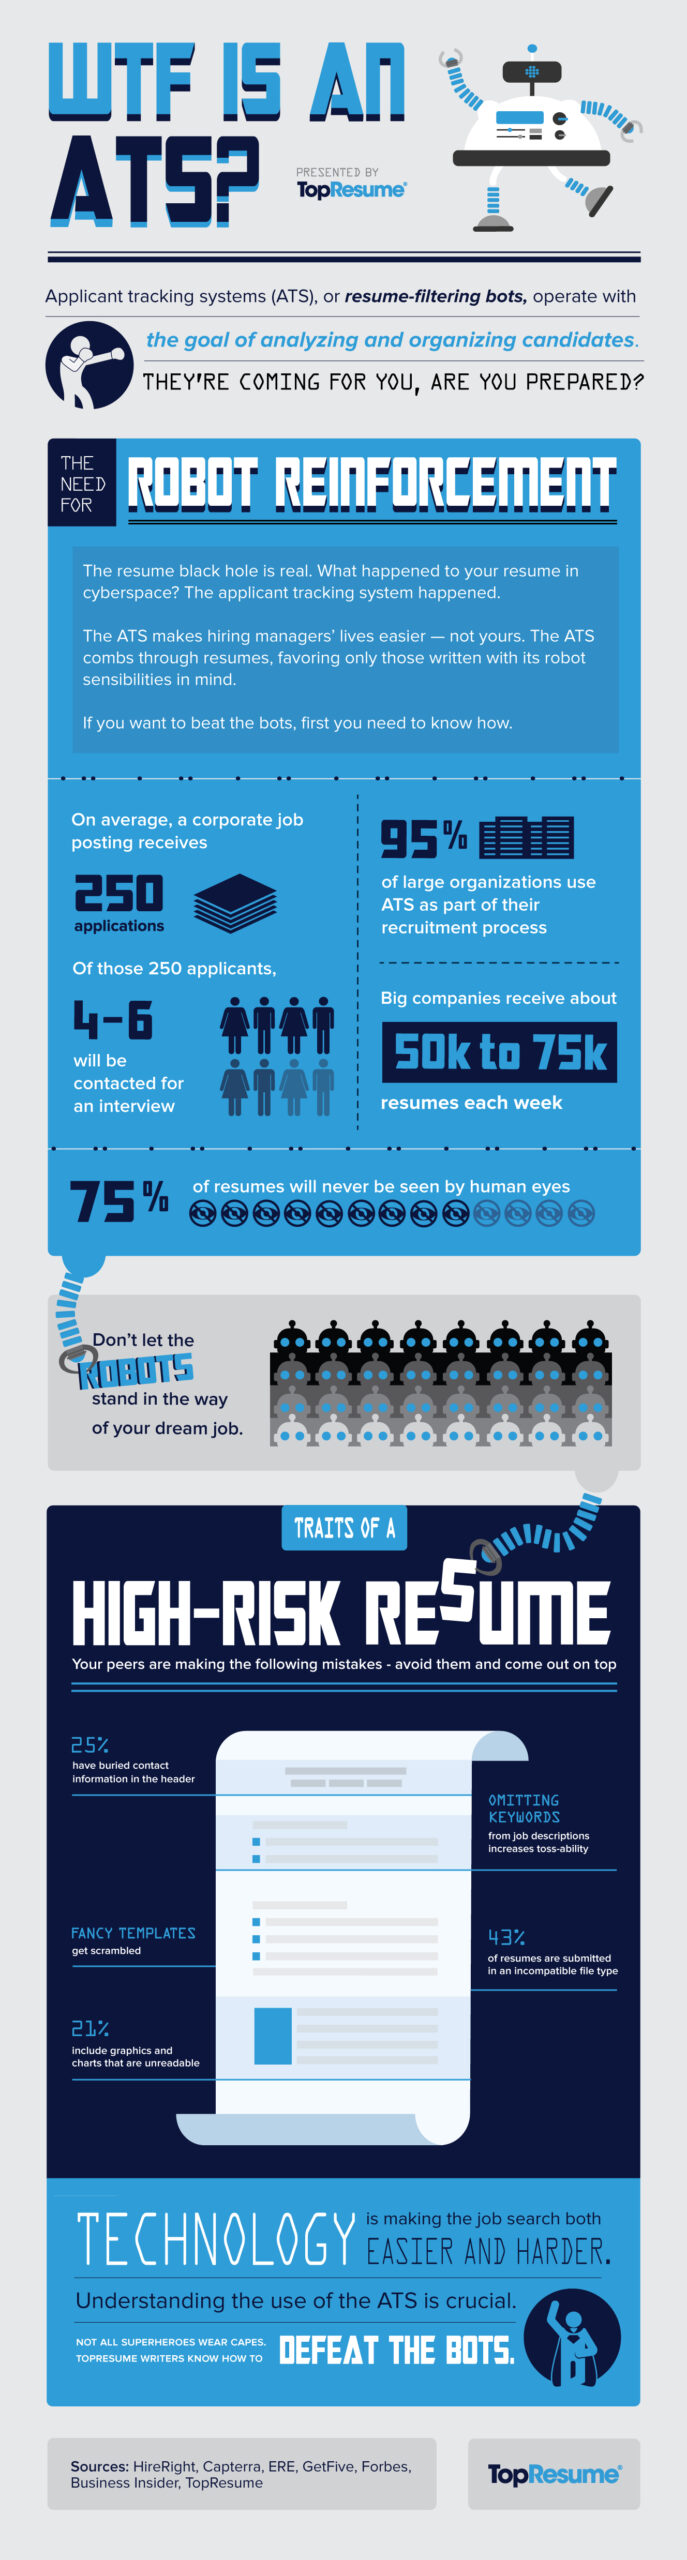 an ats to write resume beat the applicant tracking system topresume friendly infographic Resume Applicant Tracking System Friendly Resume